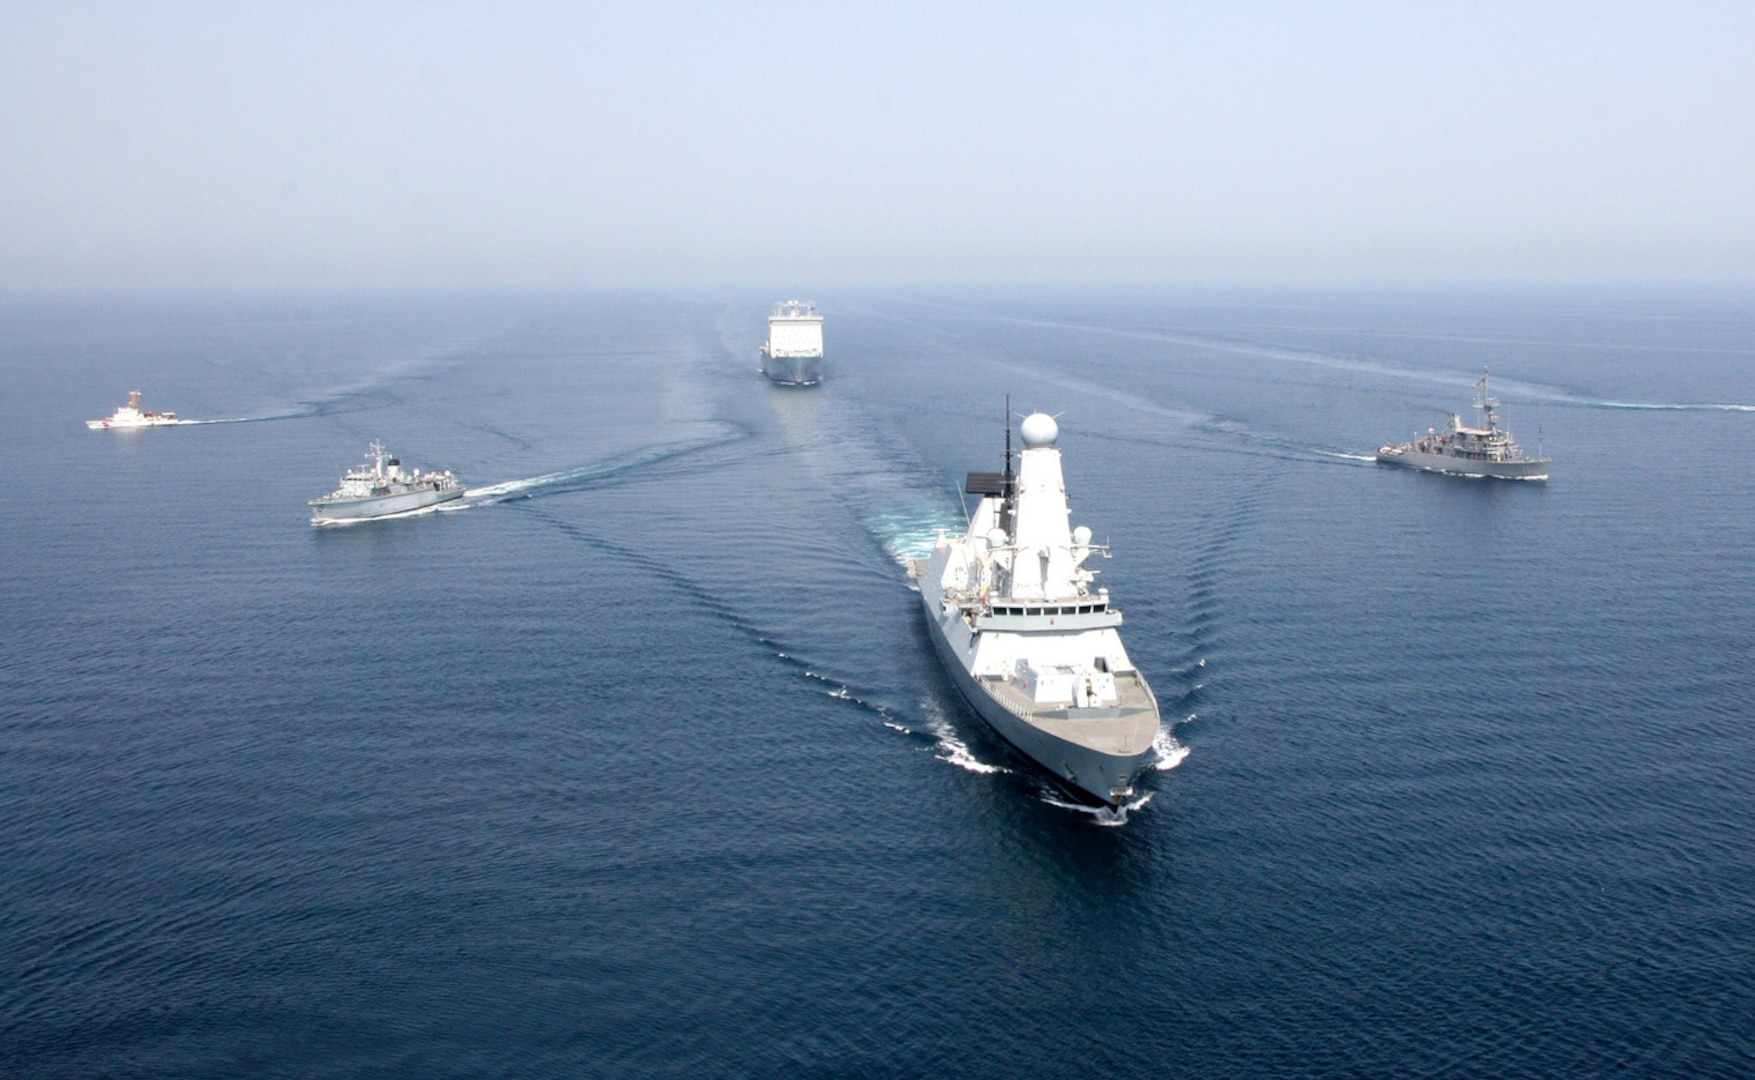 Royal Navy ship HMS Defender and Royal Fleet Auxiliary ship RFA Cardigan Bay anchor a formation of coalition mine countermeasures and maritime security vessels at sea, operating in support of the International Mine Countermeasures Exercise (IMCMEX). IMCMEX includes navies from more than 30 countries spanning six continents training together across the Middle East. (Royal Navy photo)